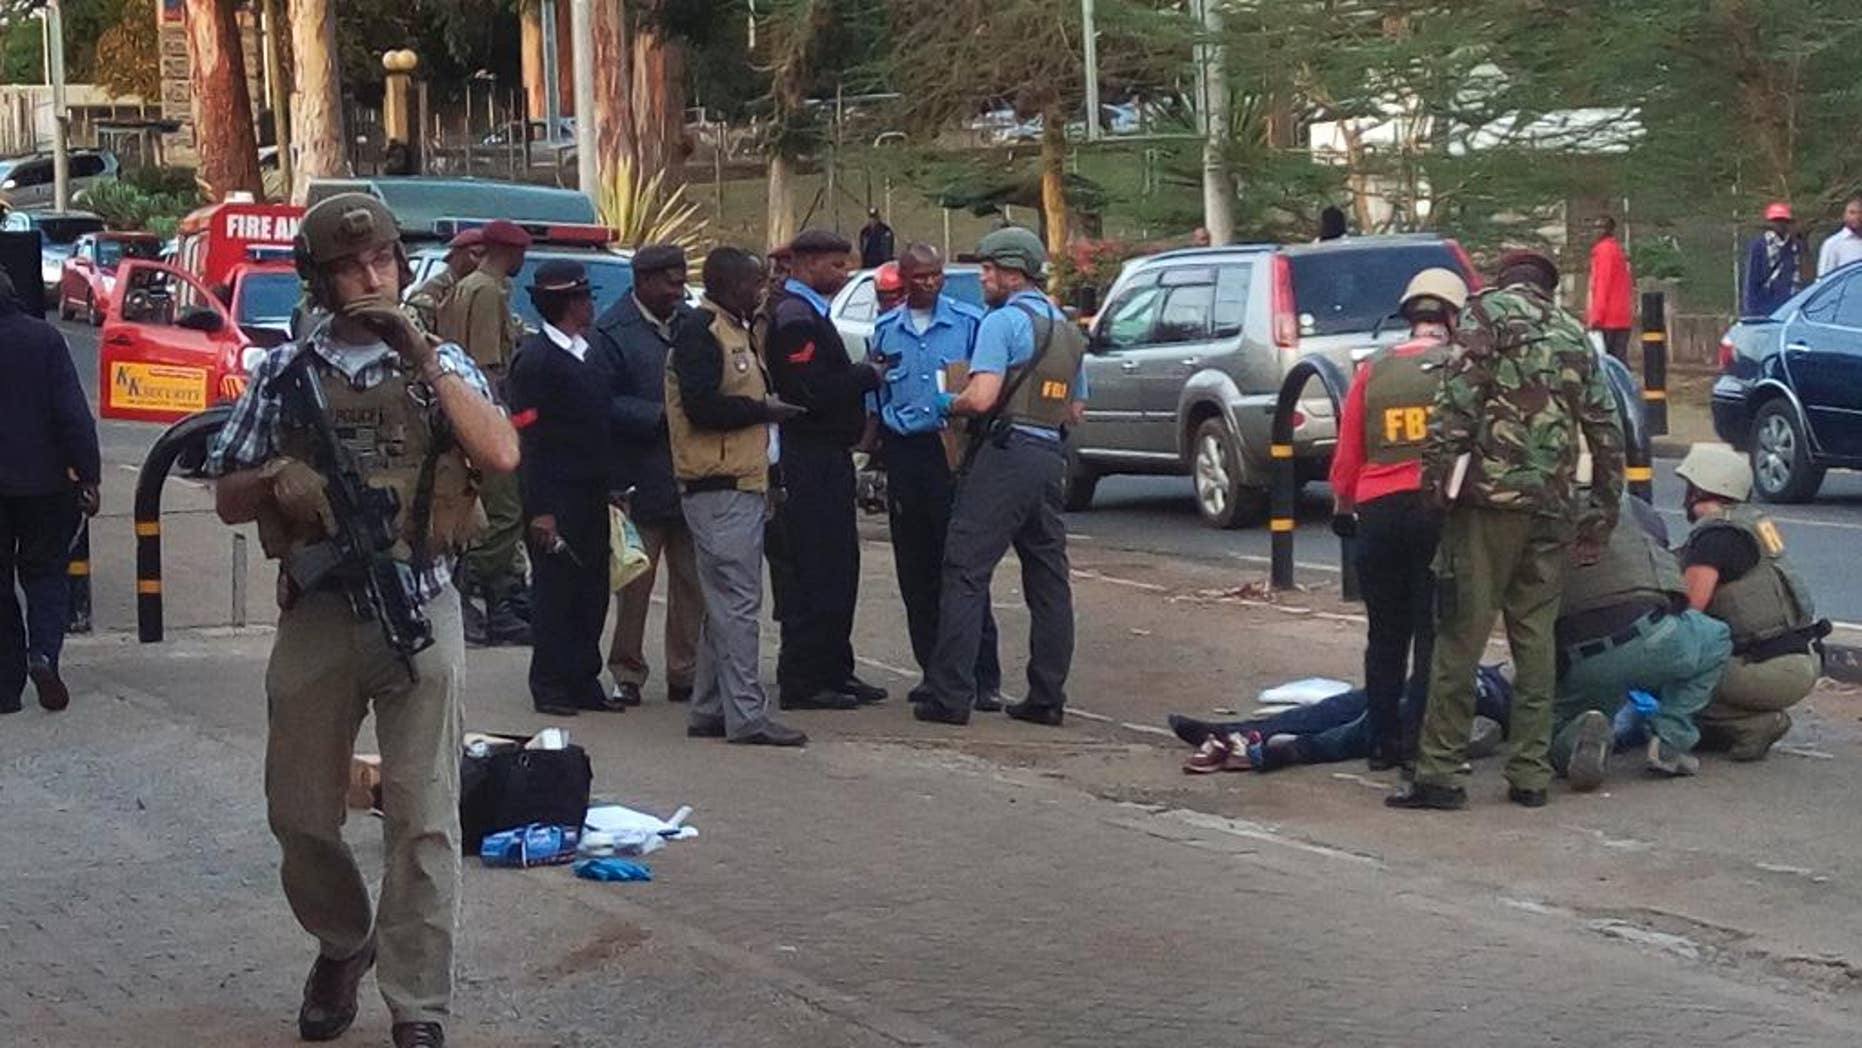 Unidentified U.S. Embassy personnel and Kenyan security forces stand near to the body, right, of a man who was killed outside the U.S. Embassy in Nairobi, Kenya Thursday, Oct. 27, 2016. A Kenyan police official said the man was shot dead after stabbing a policeman guarding the perimeter wall of the U.S. Embassy in Nairobi. (AP Photo/Moses Muoki)